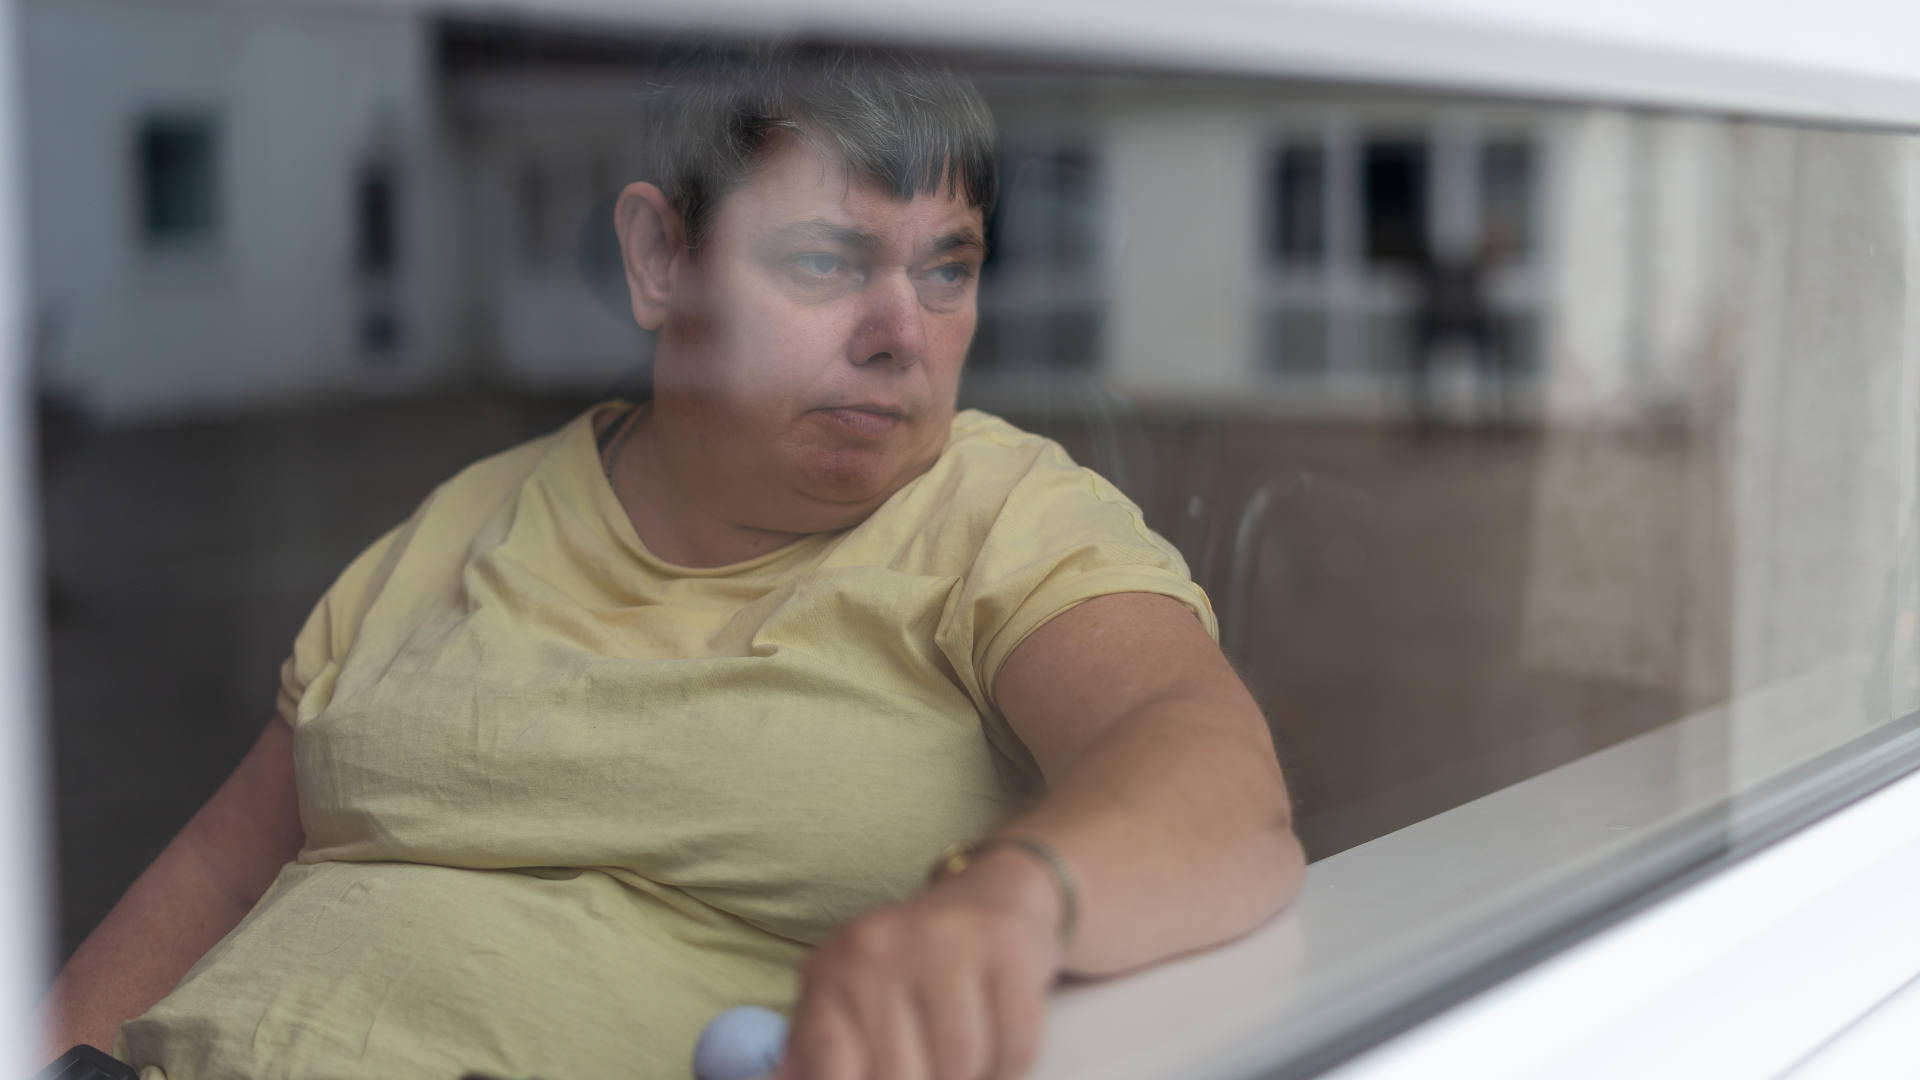 A woman in a wheelchair, looking out at the world through the window